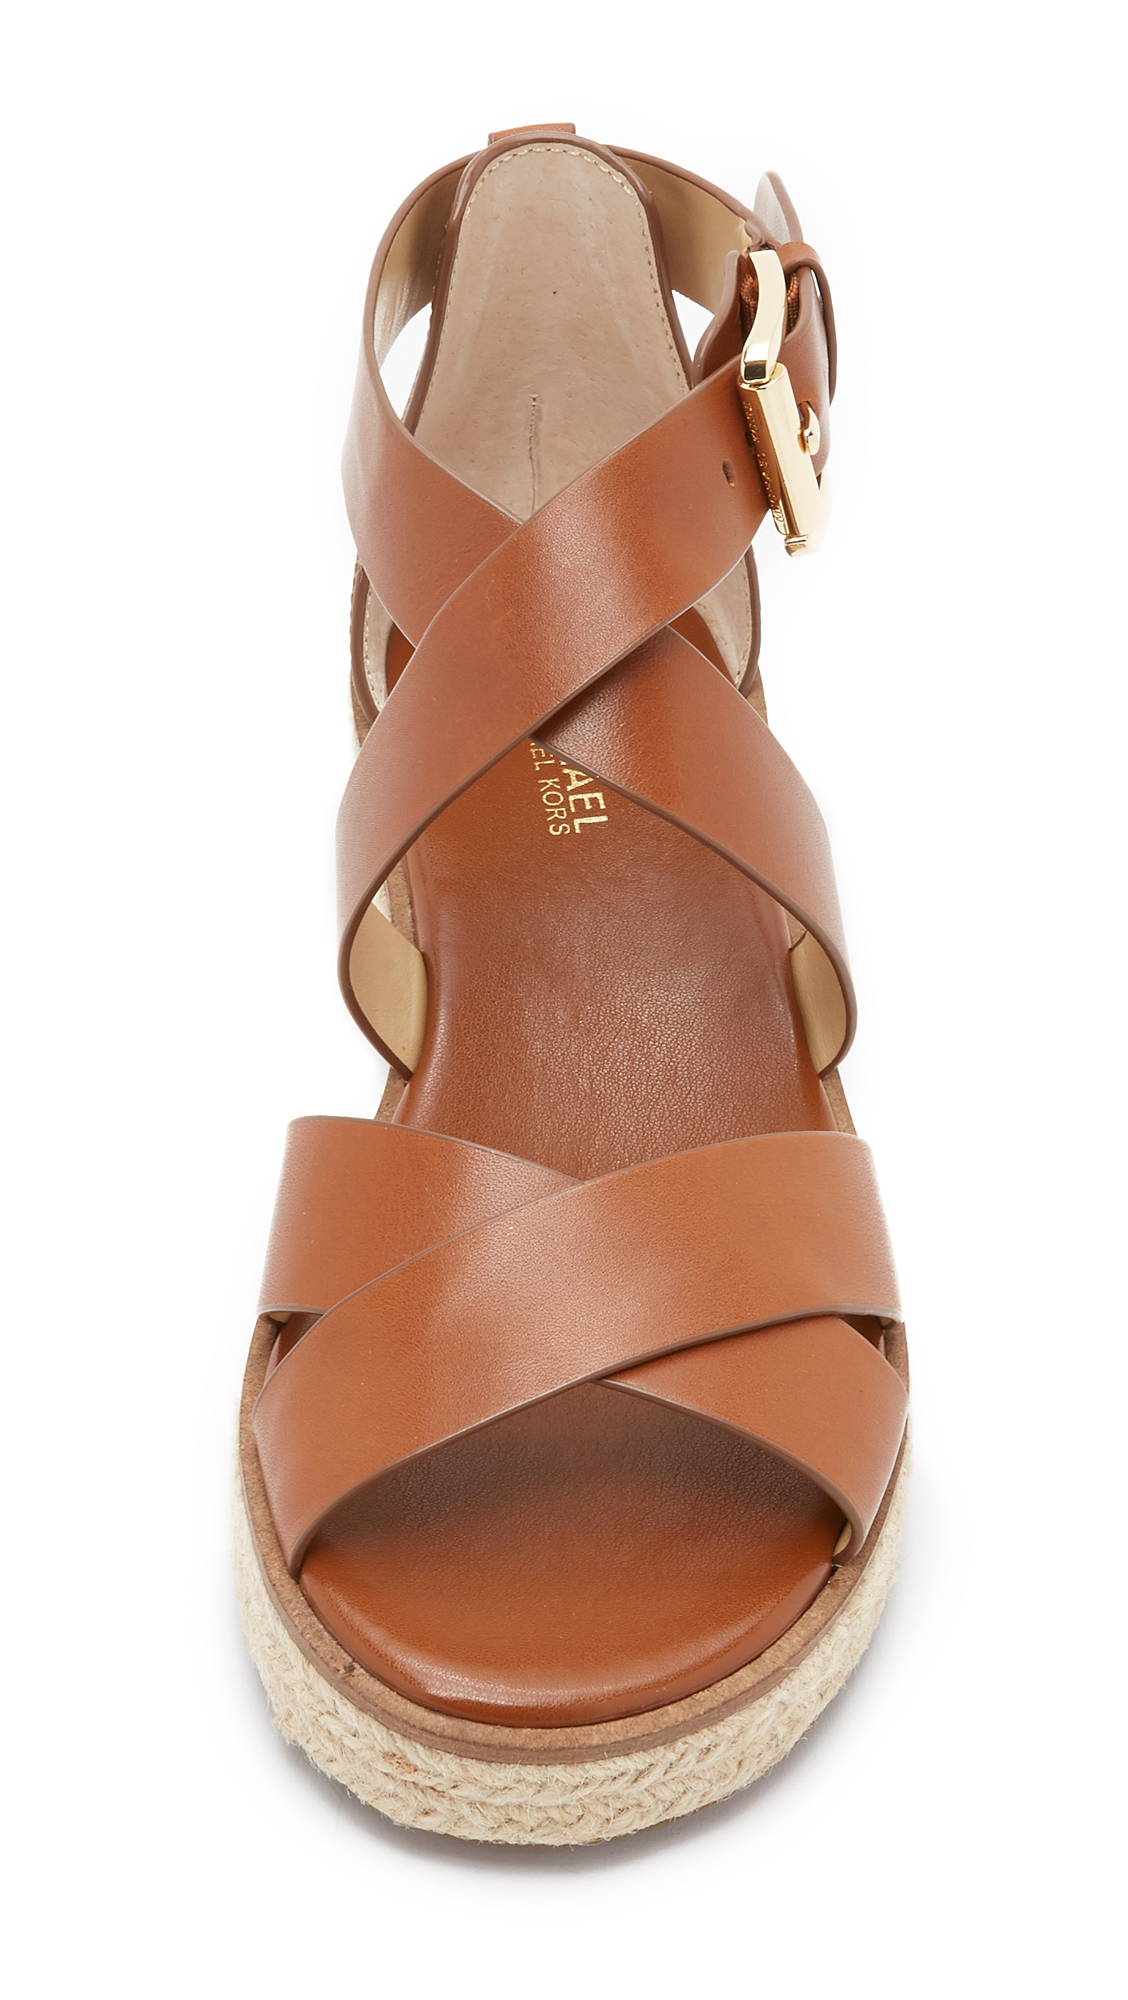 0a6142596468 Lyst - MICHAEL Michael Kors Darby Sandals in Brown